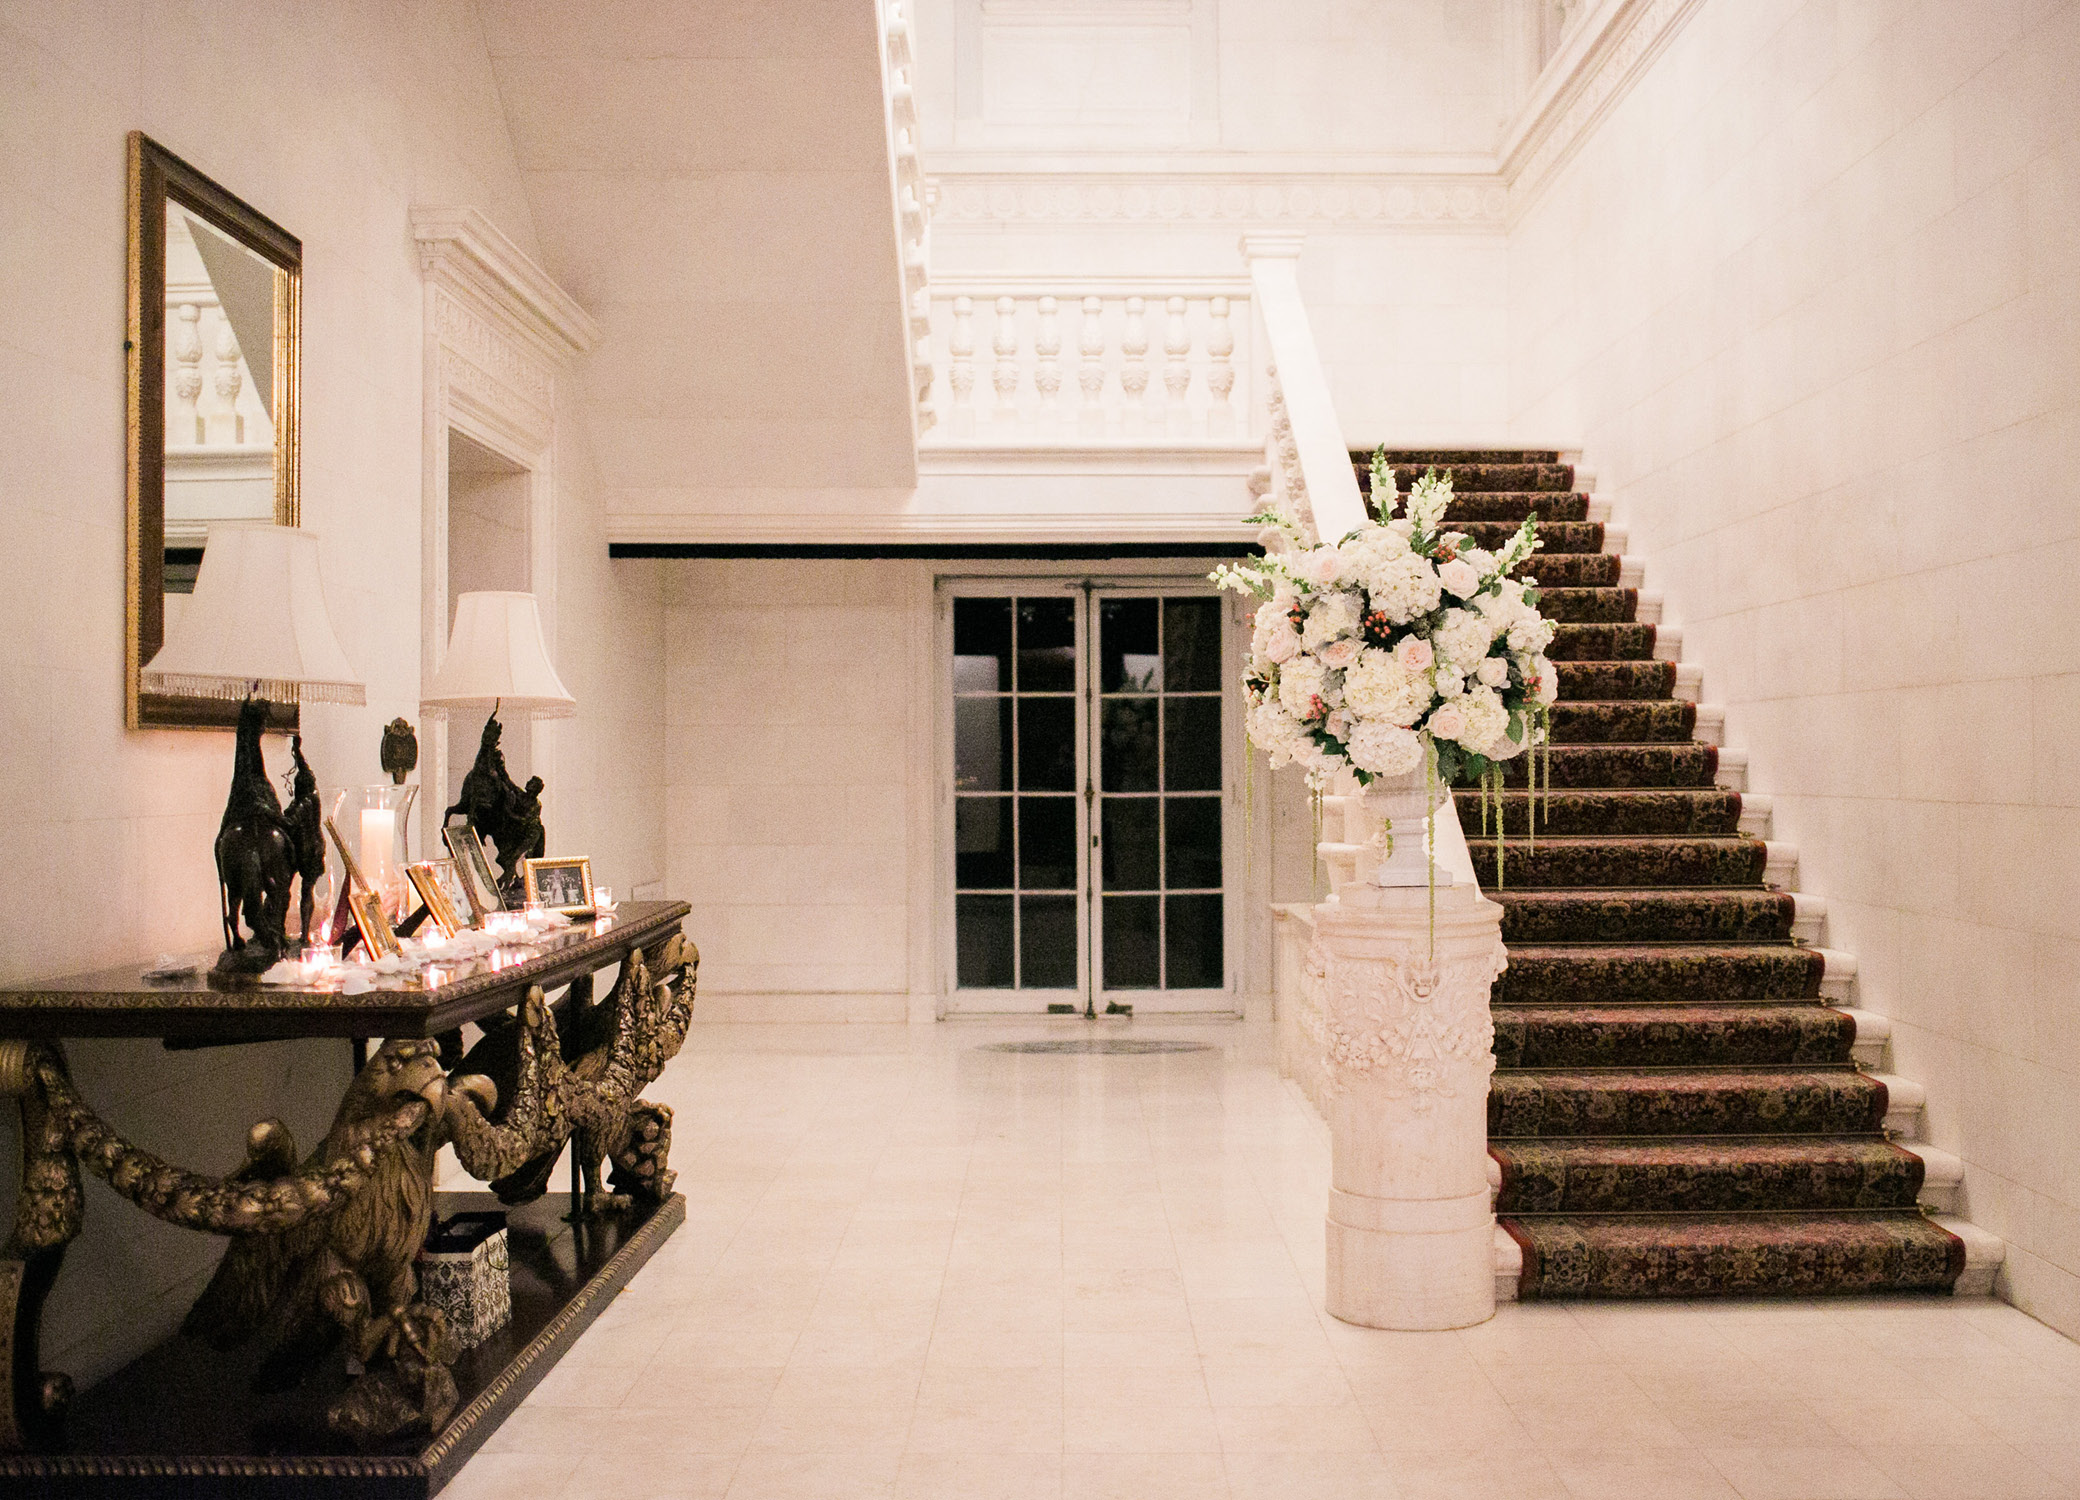 Wedding Venue Staircase with Floral Display